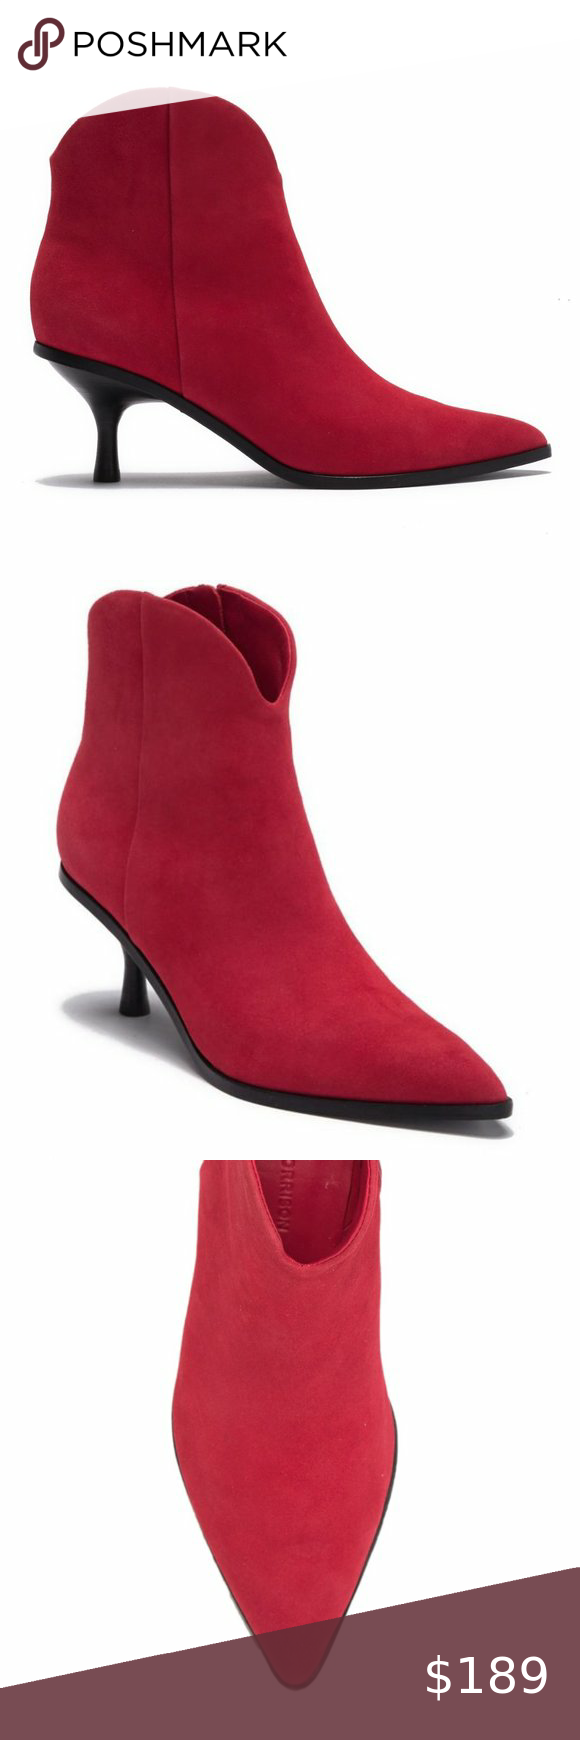 Sigerson Morrison Red Suede Kitten Heel Ankle Boot In 2020 Kitten Heel Ankle Boots Kitten Heels Heeled Ankle Boots